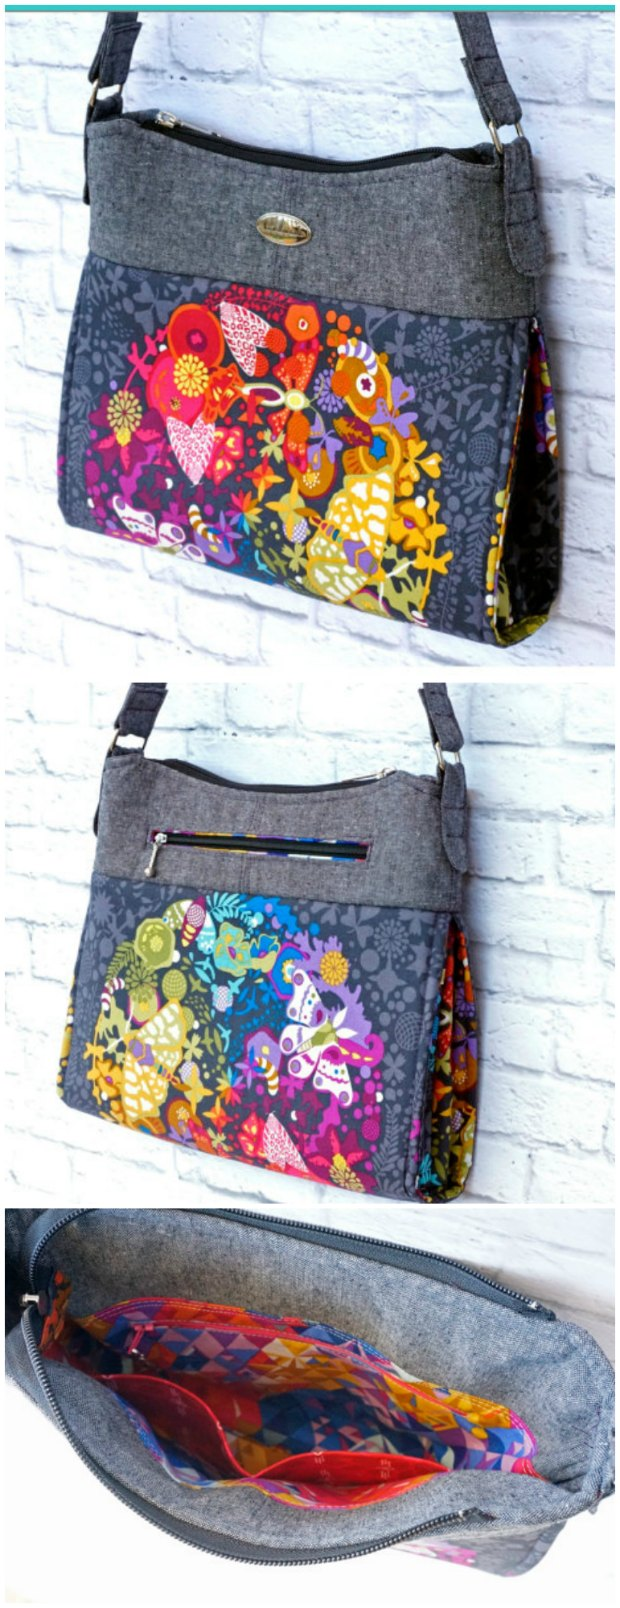 Gabby purse sewing pattern.  I love the examples and slideshow shown here - so very inspiring for ideas.  Works in leather, faux leather and fabrics of all kinds.